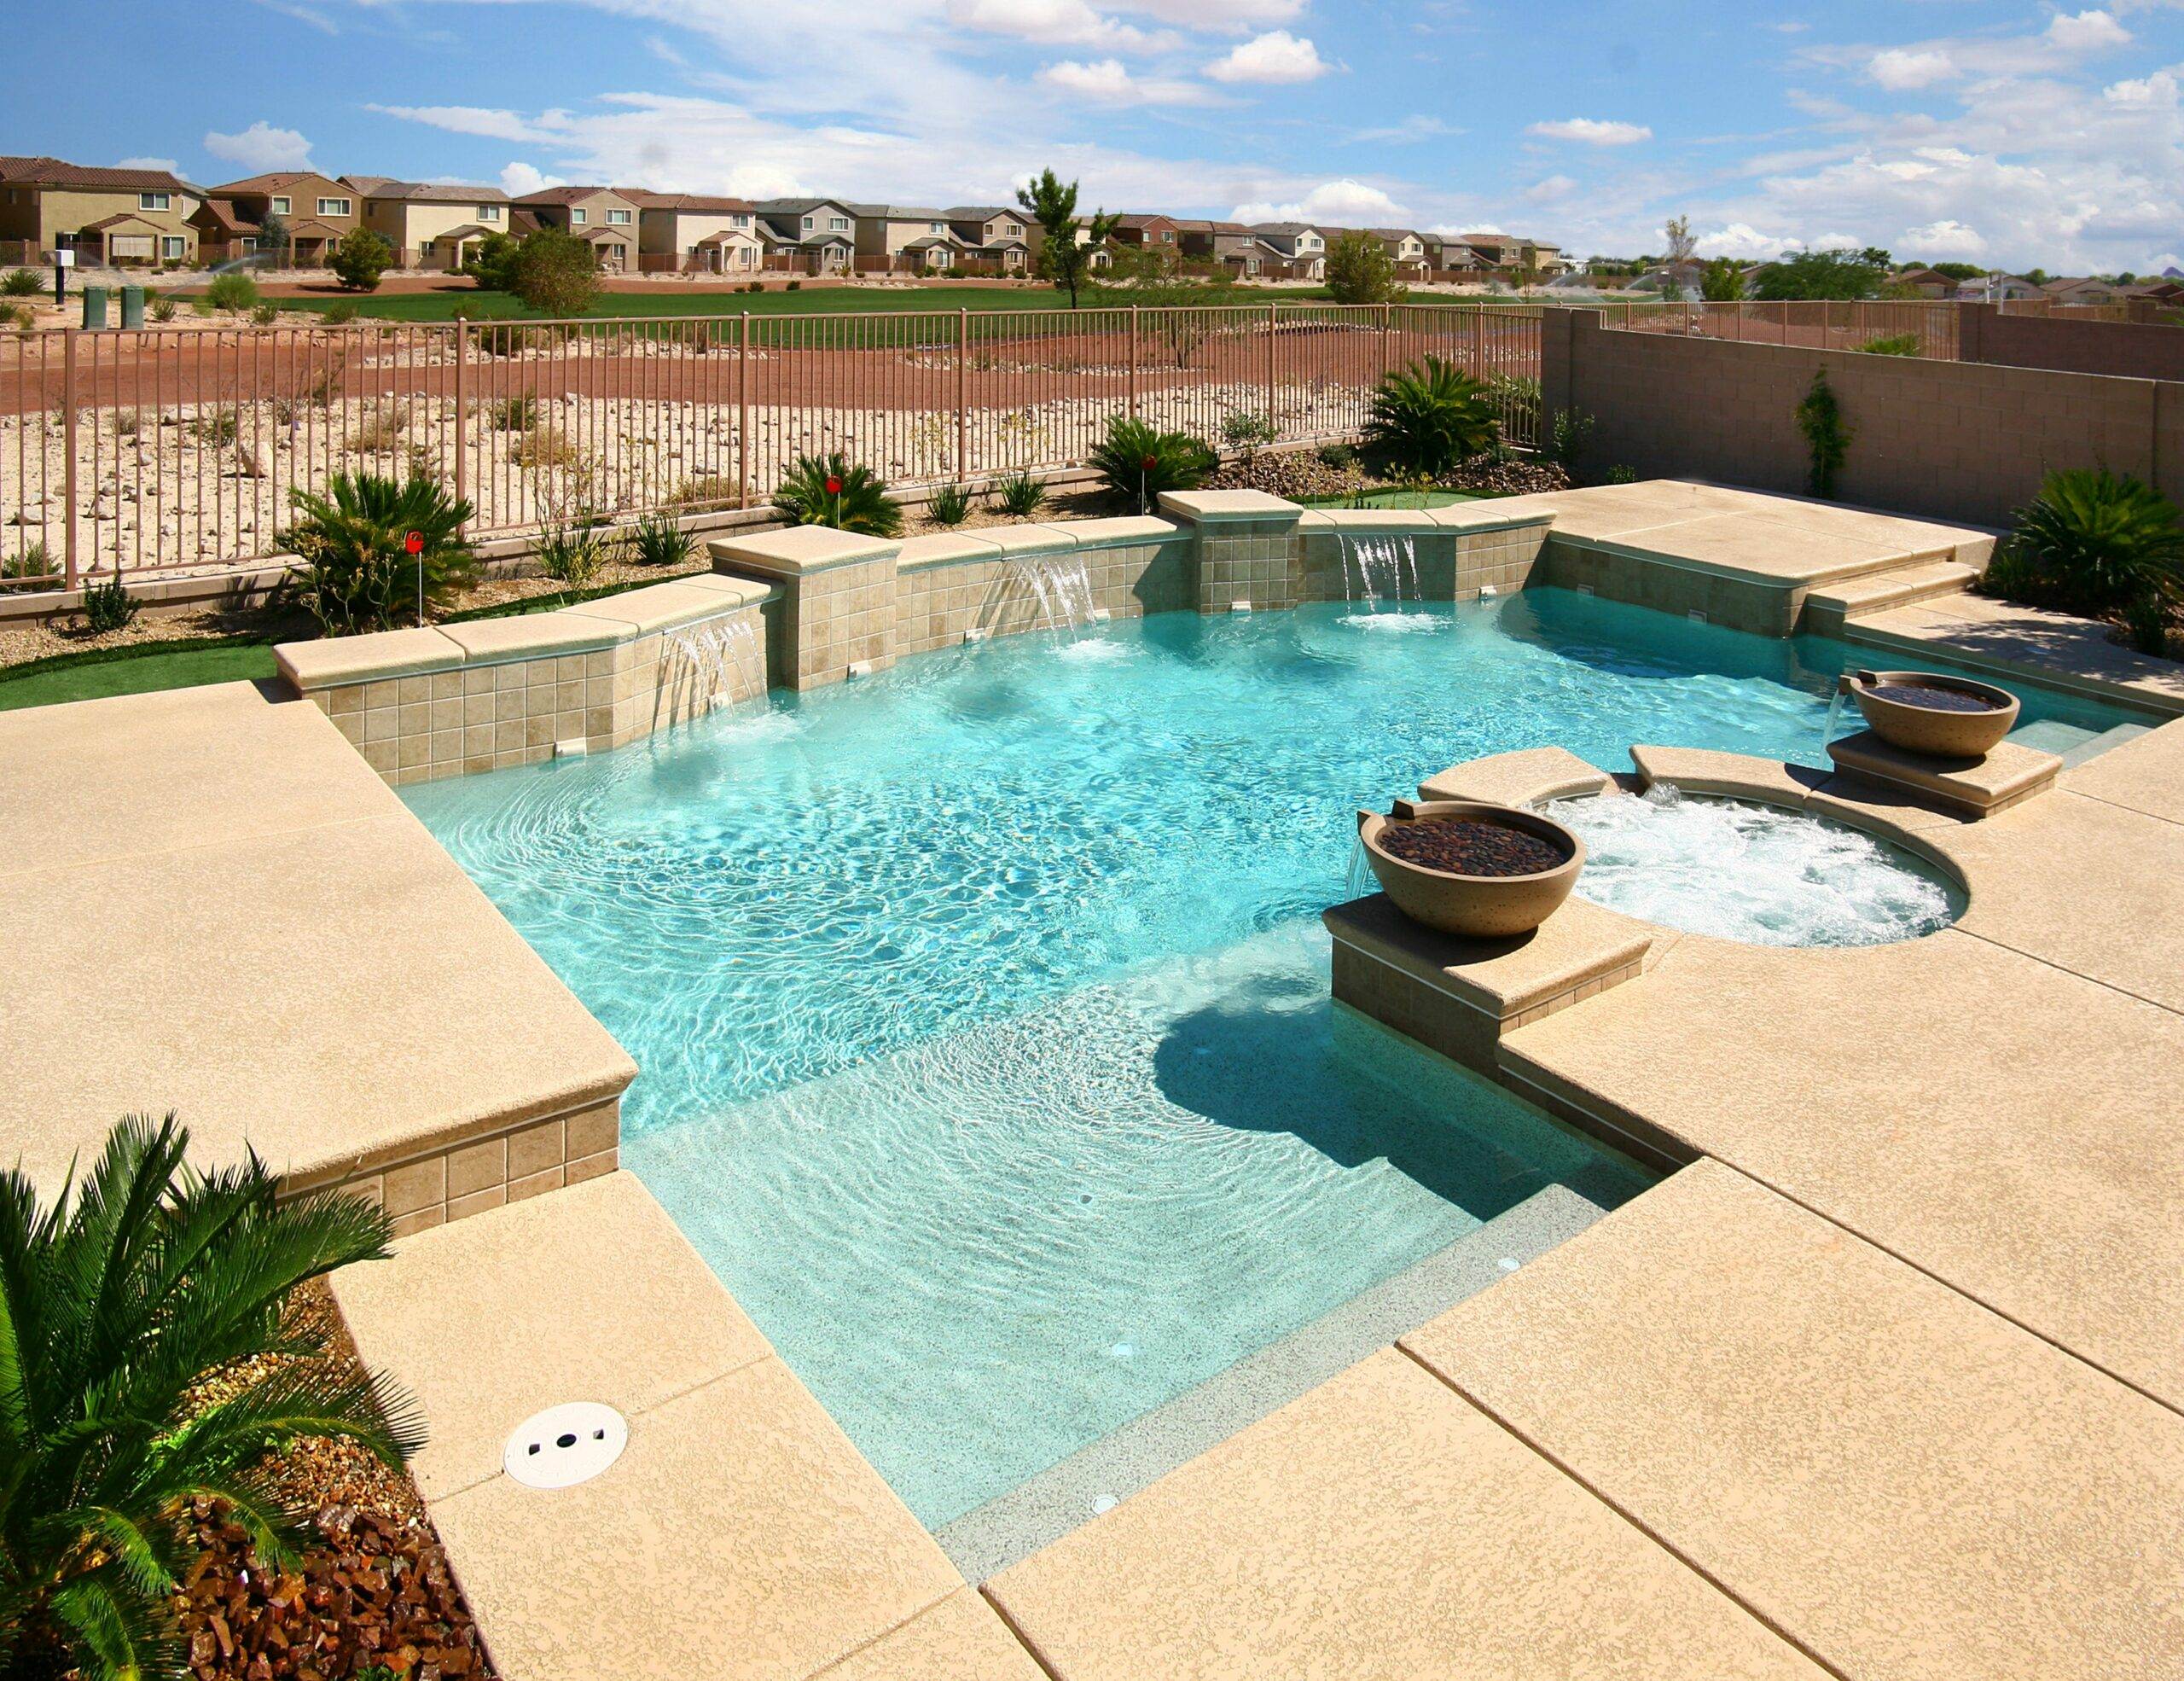 Geometric Pools For Homes Hotels And Resorts Desert Springs Simple ..